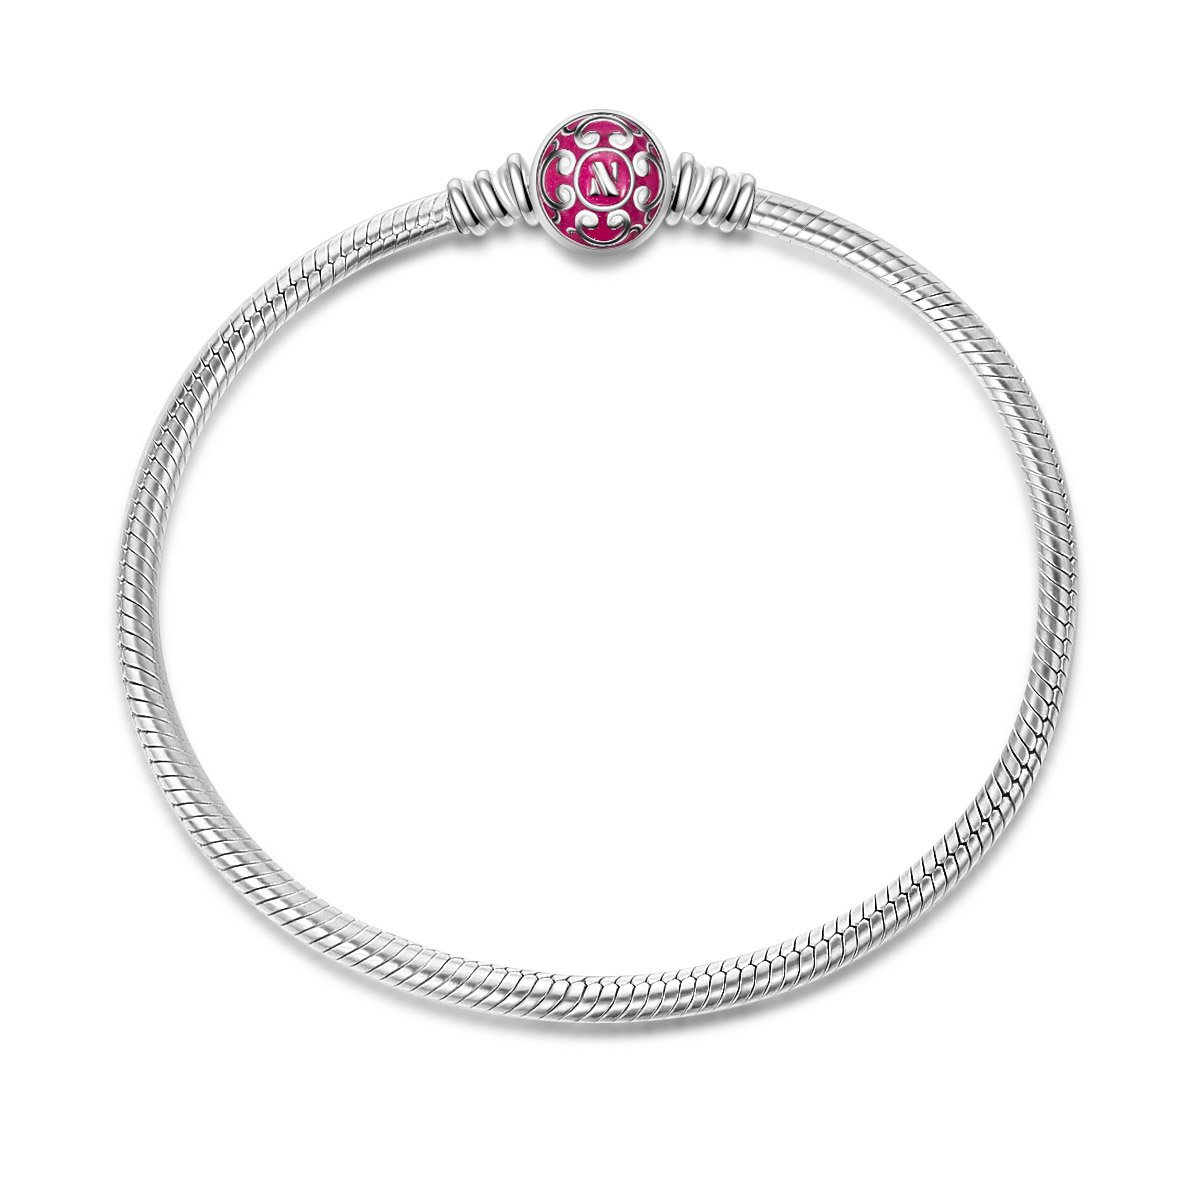 NinaQueen 925 Sterling Silver Snake Chain Bracelet with Pink Clasp Charms 6.7'',Birthday Anniversary Graduation Wedding Gifts for Women Wife Daughter Sister Mom Bracelets for Charms Teen Gils